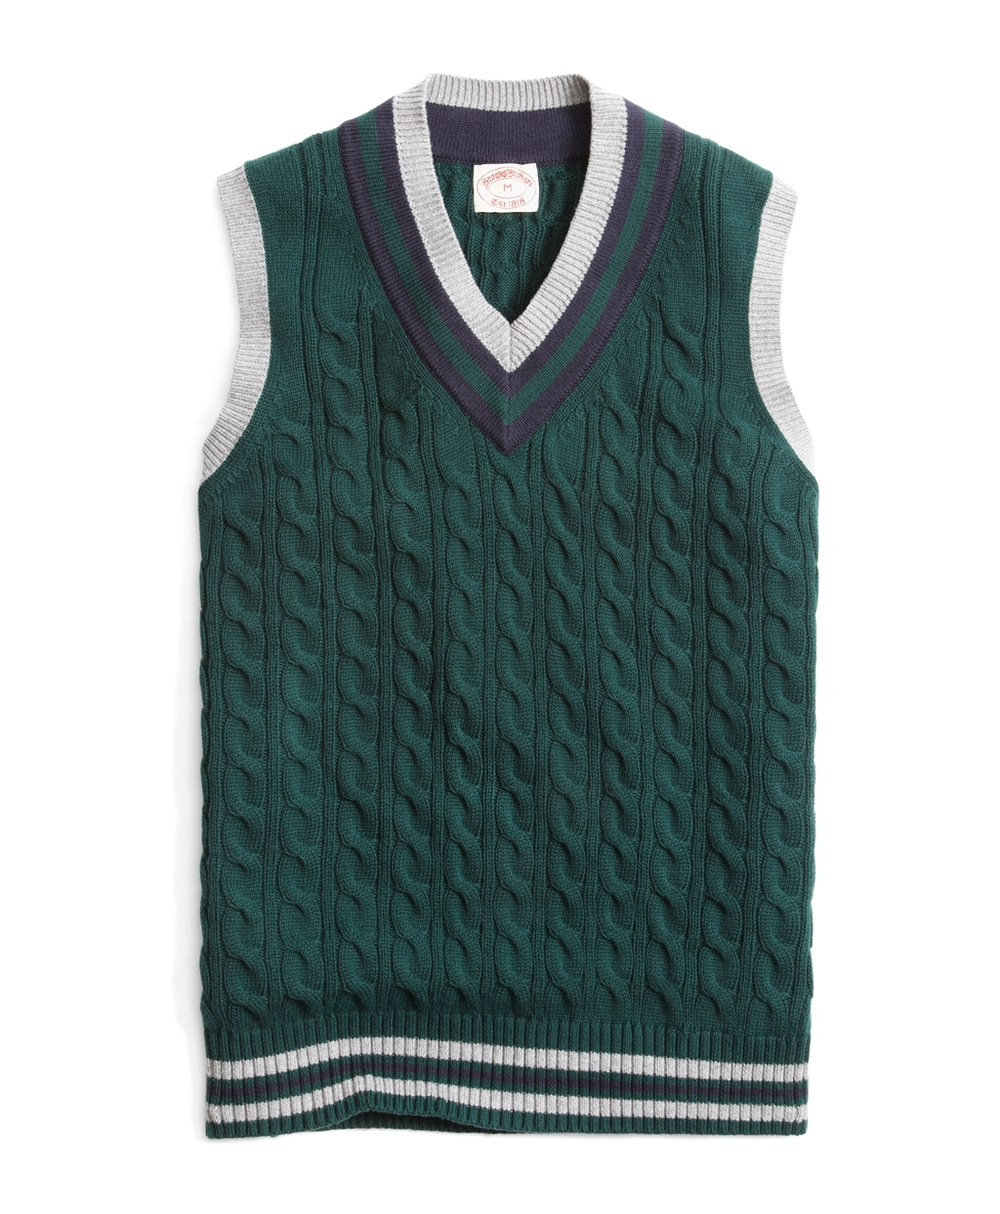 "I'm a sucker for Brooks Brothers, yes, it' true. However, this vest caught my eye while flipping through their sale items. I've stopped wearing sweater vests (not a real reason why, I think I grew out or argyle) but this ""cricket vest"" is stunning. 